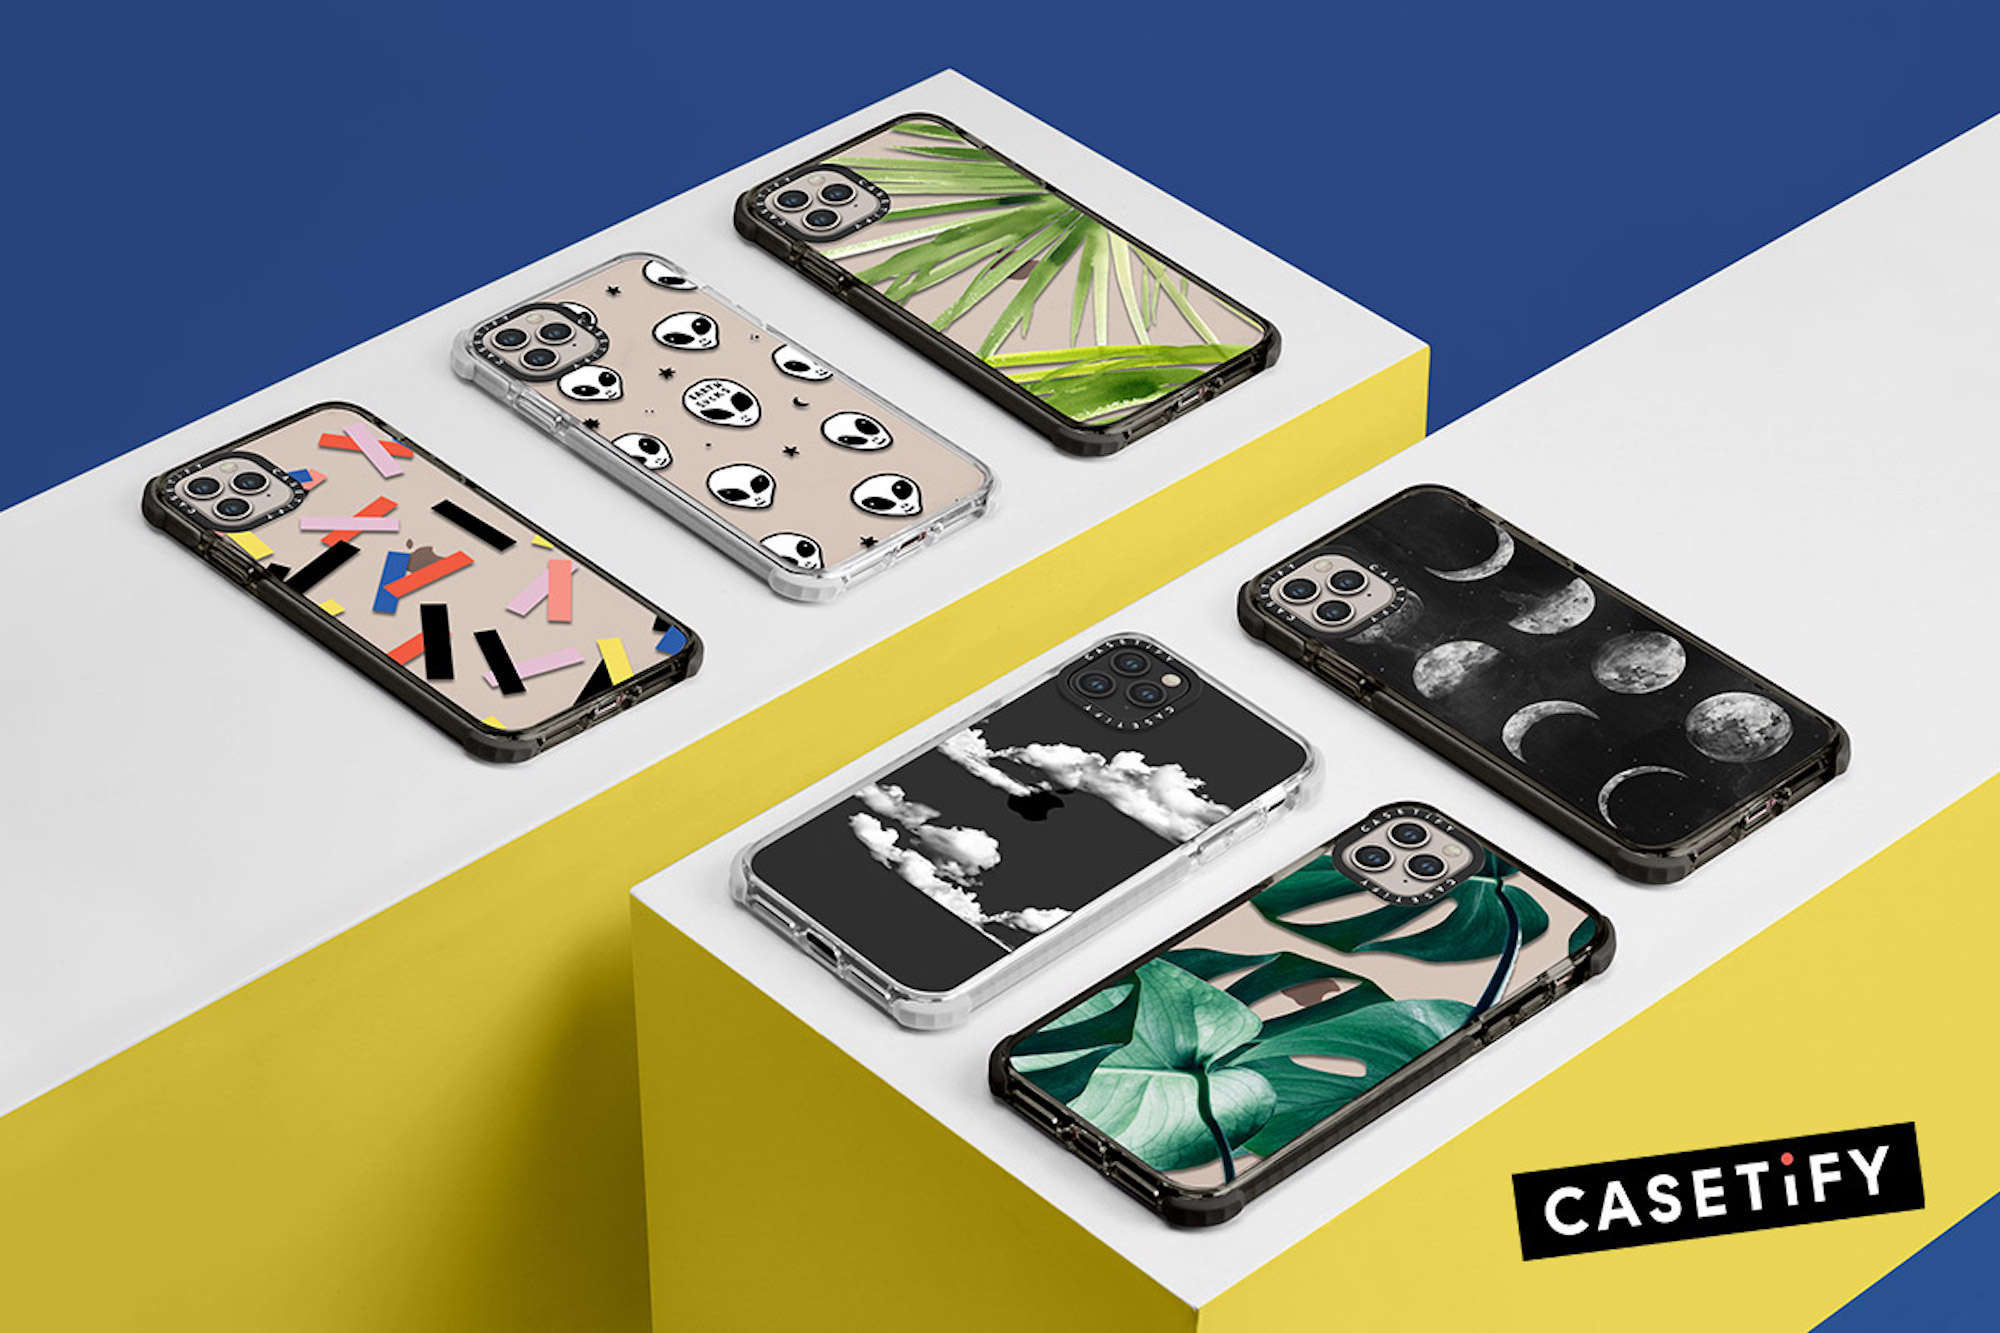 CASETiFY new phone cases